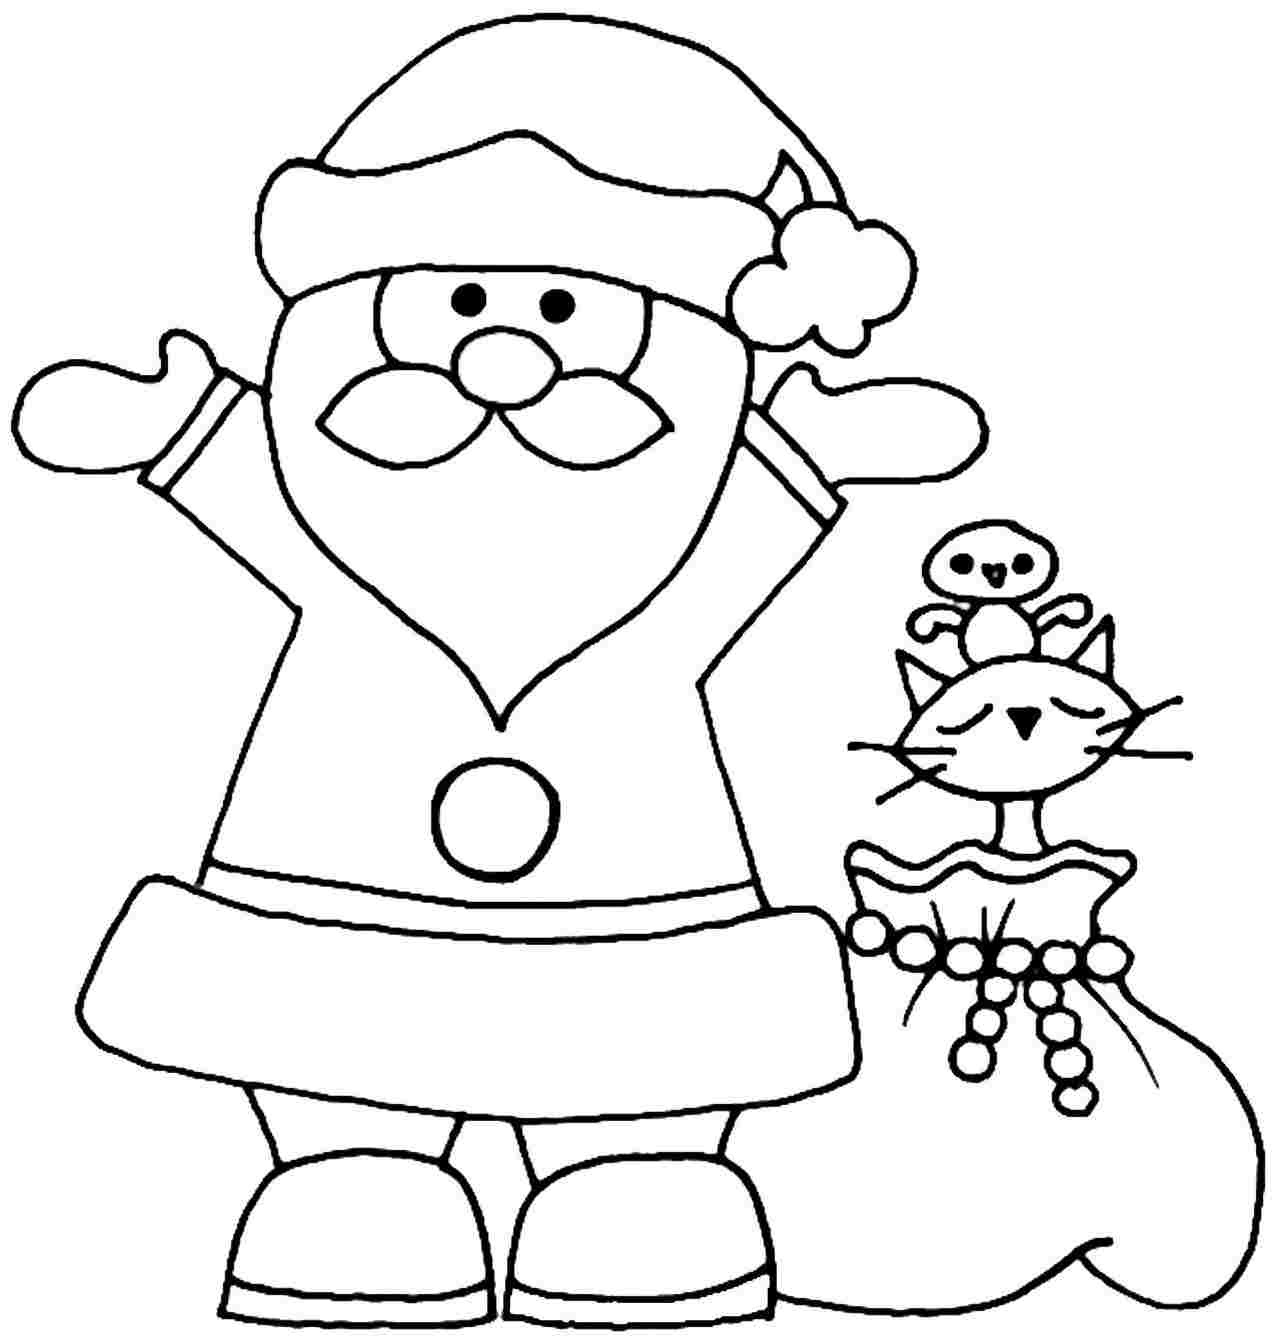 Santa Claus Drawing Easy At Getdrawings